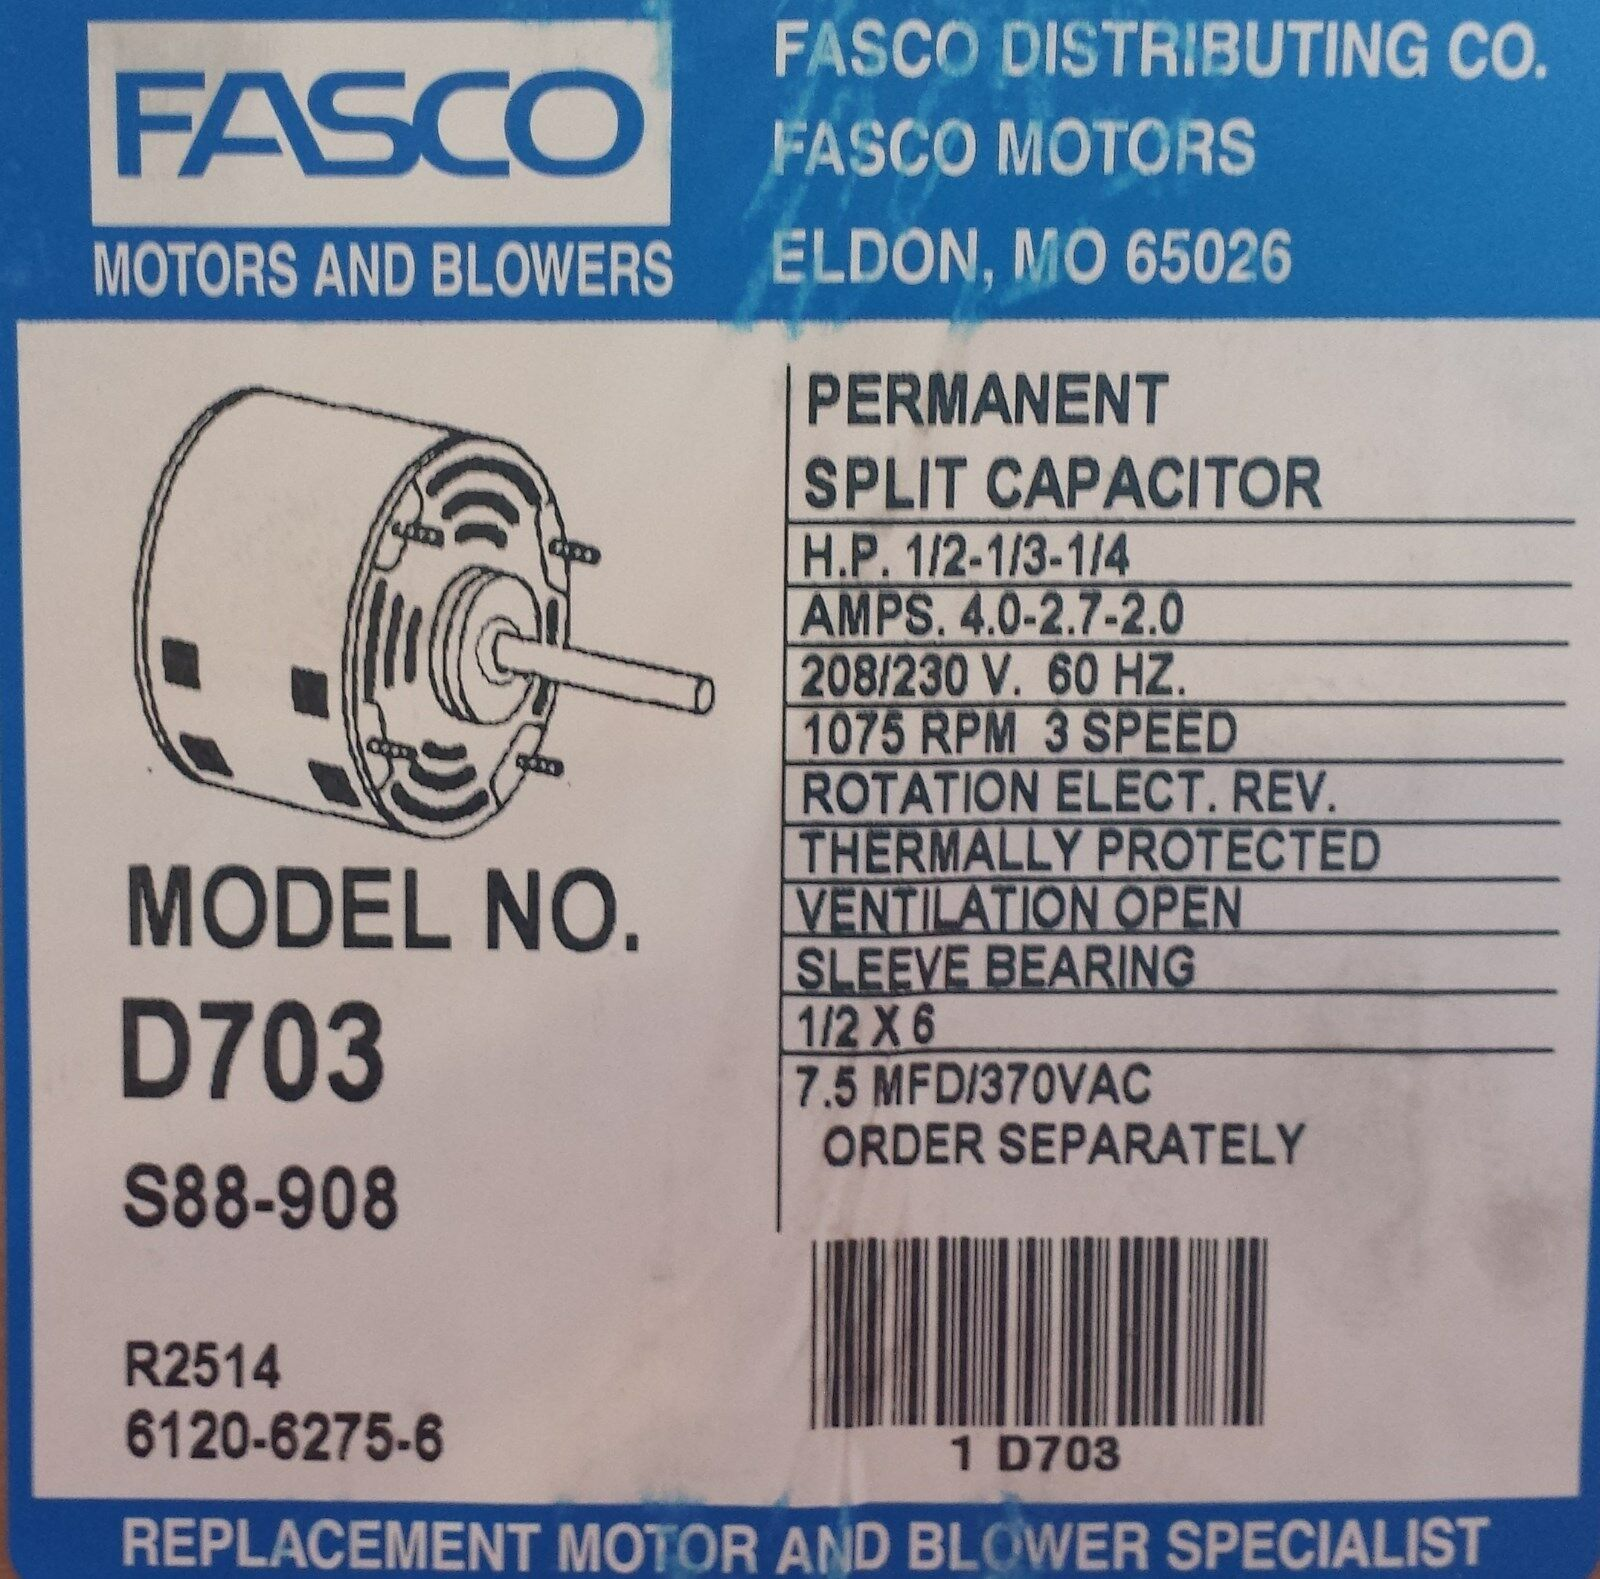 D703 Fasco Motor Wiring Diagram 31 Images B45227 Blower S L1600 Direct Drive 1 2 Hp Ebay